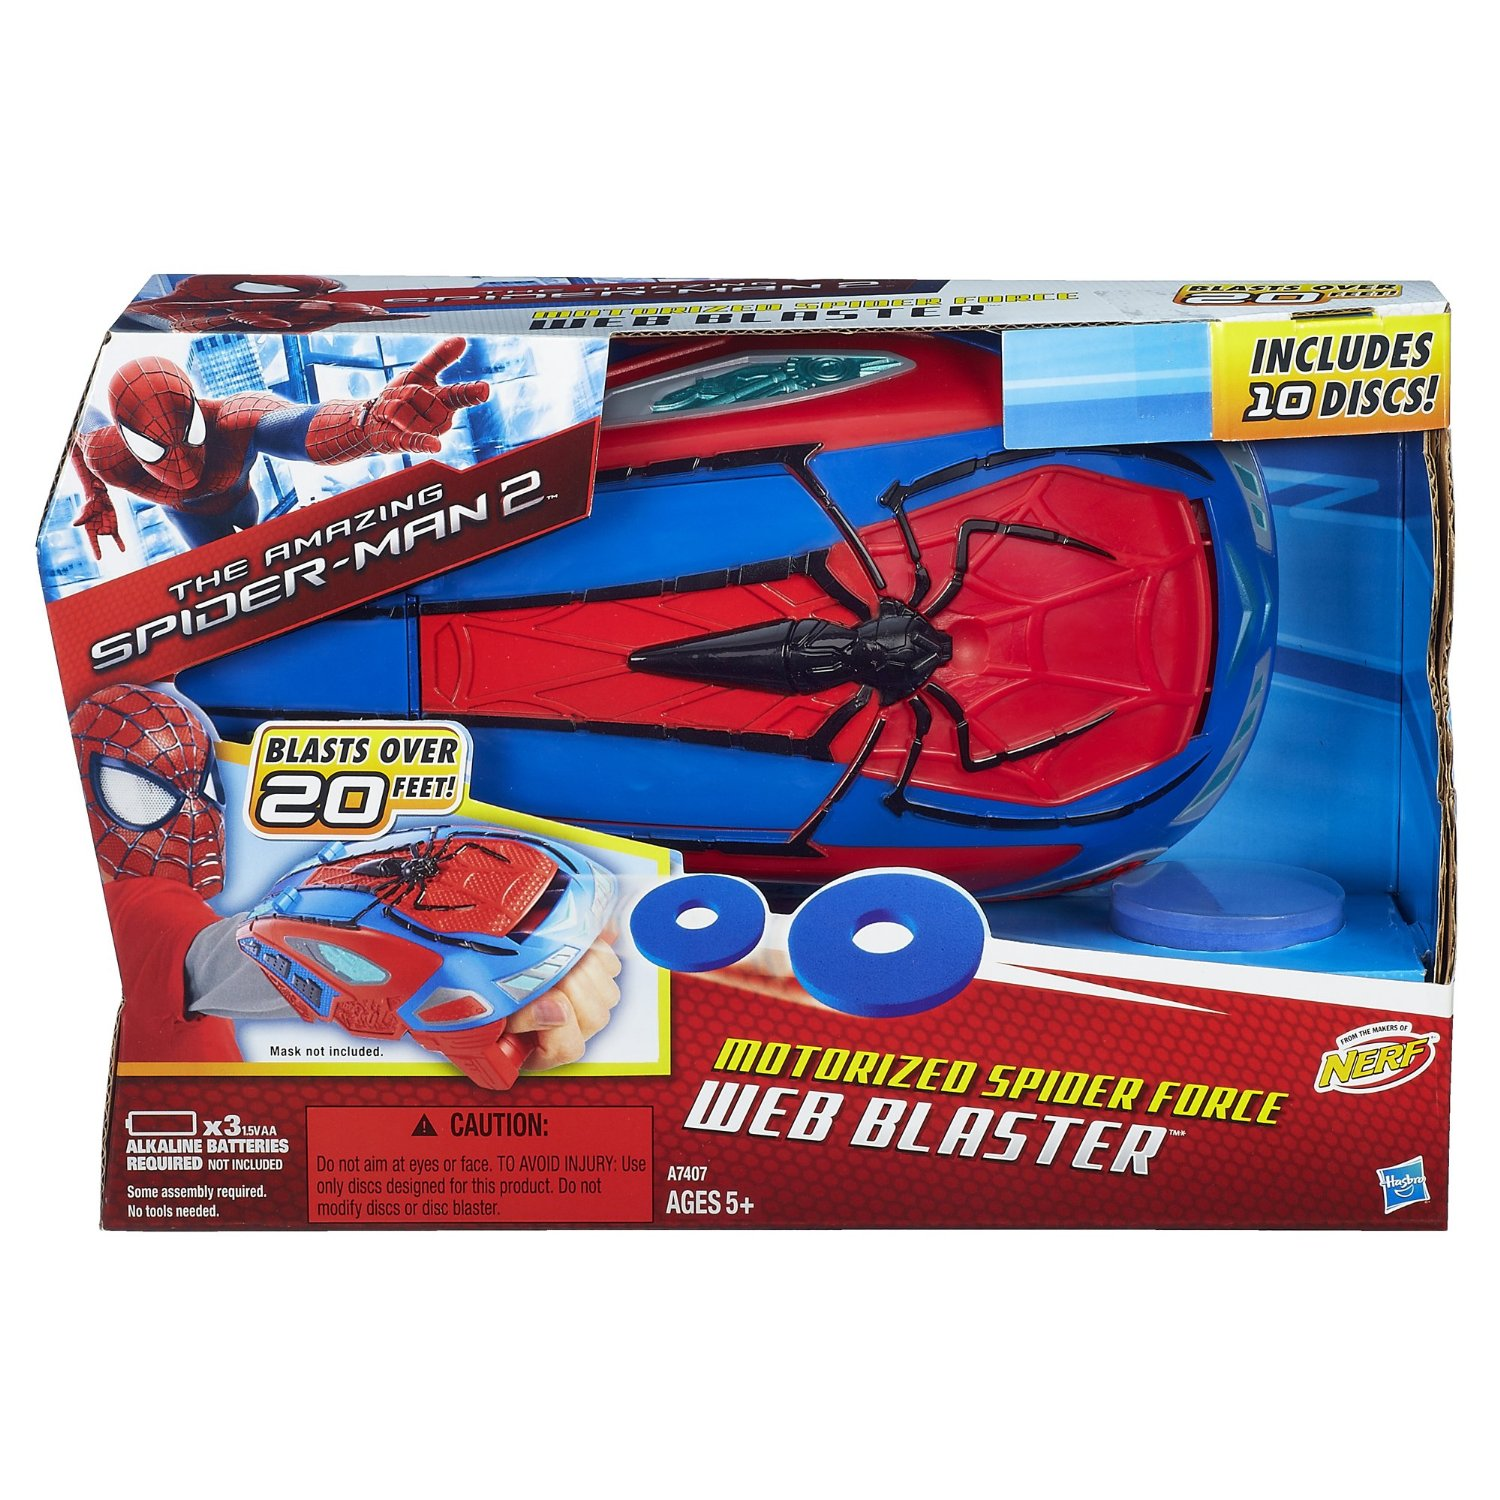 The Amazing Spider Man 2 Motorized Spider Force Web